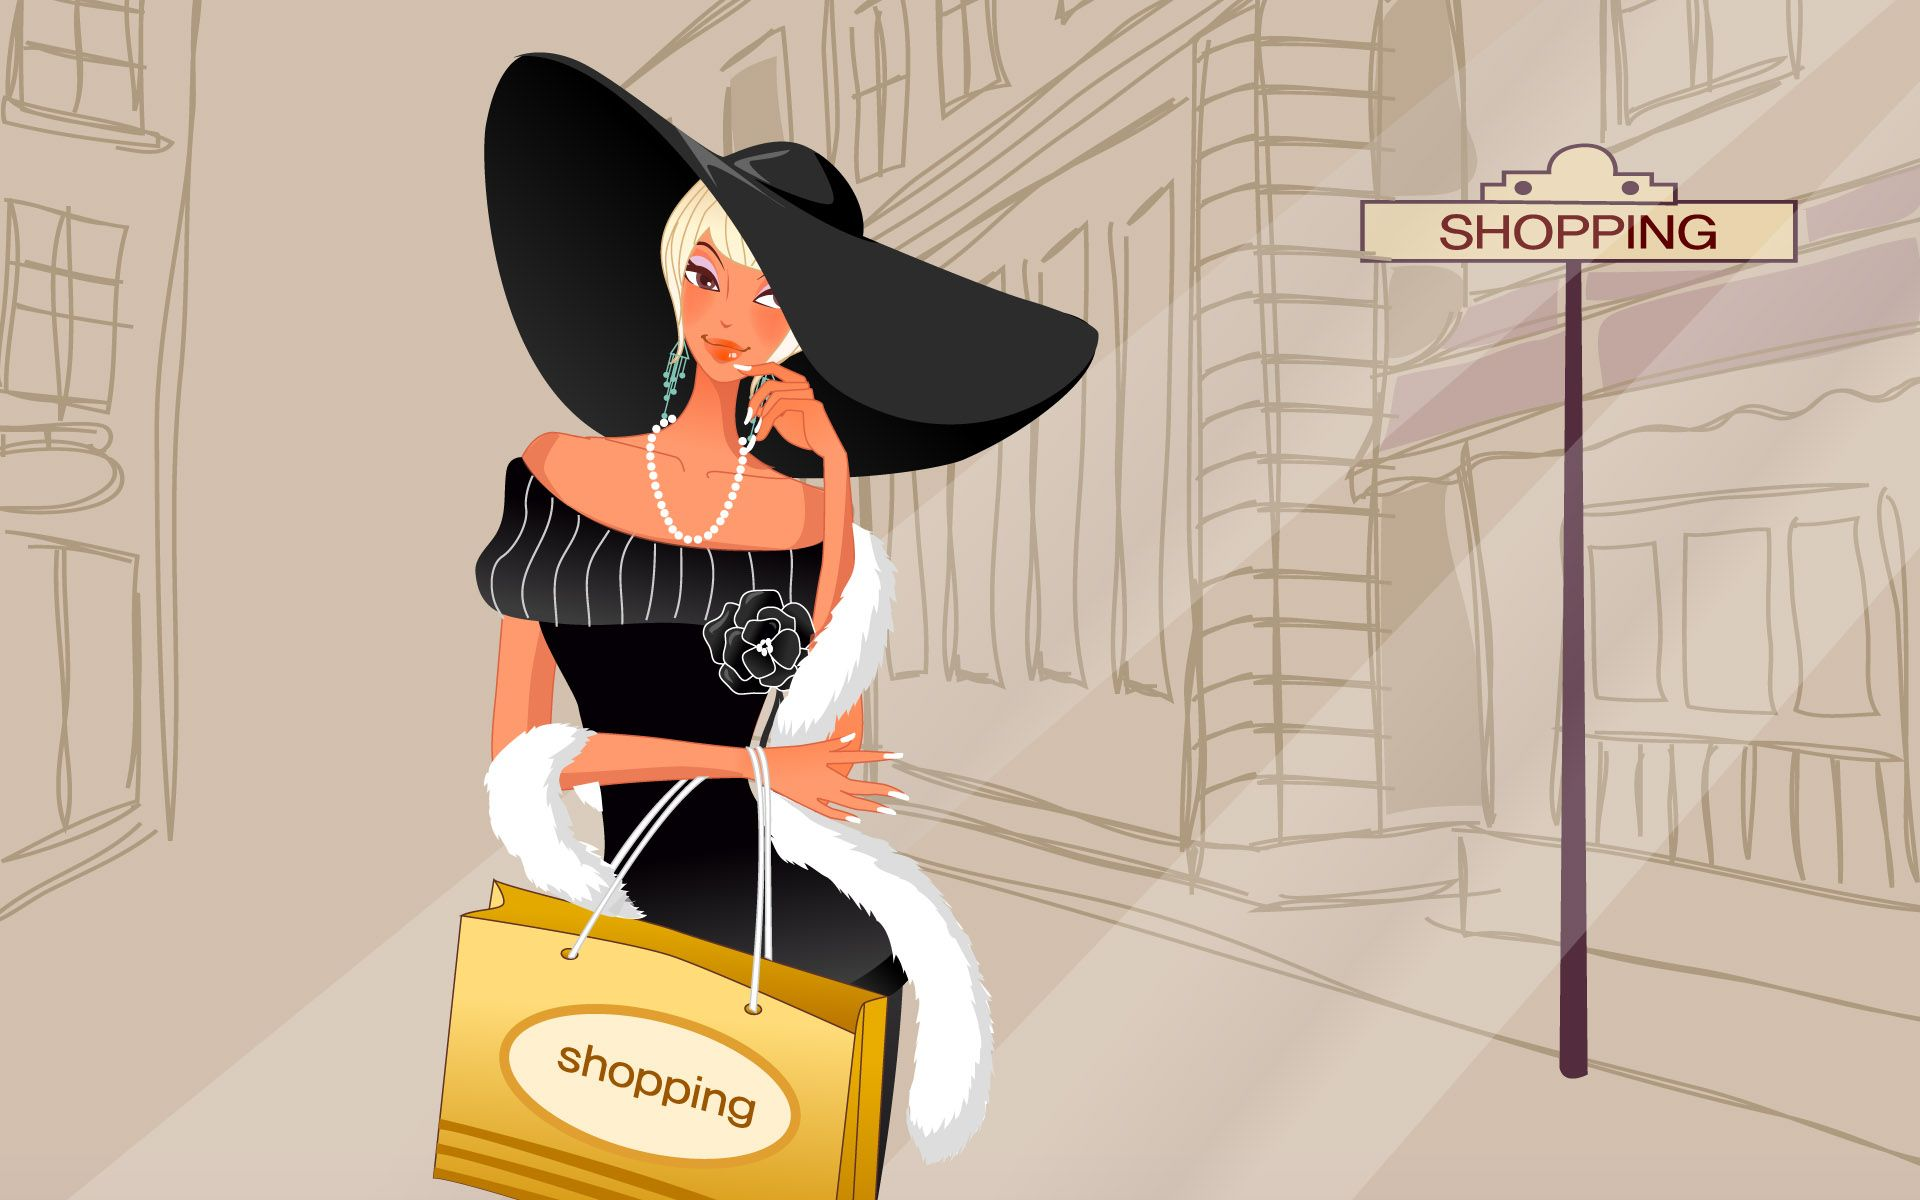 http://www.freegreatpicture.com/files/130/17976-fashion-illustration-women-wallpapers.jpg